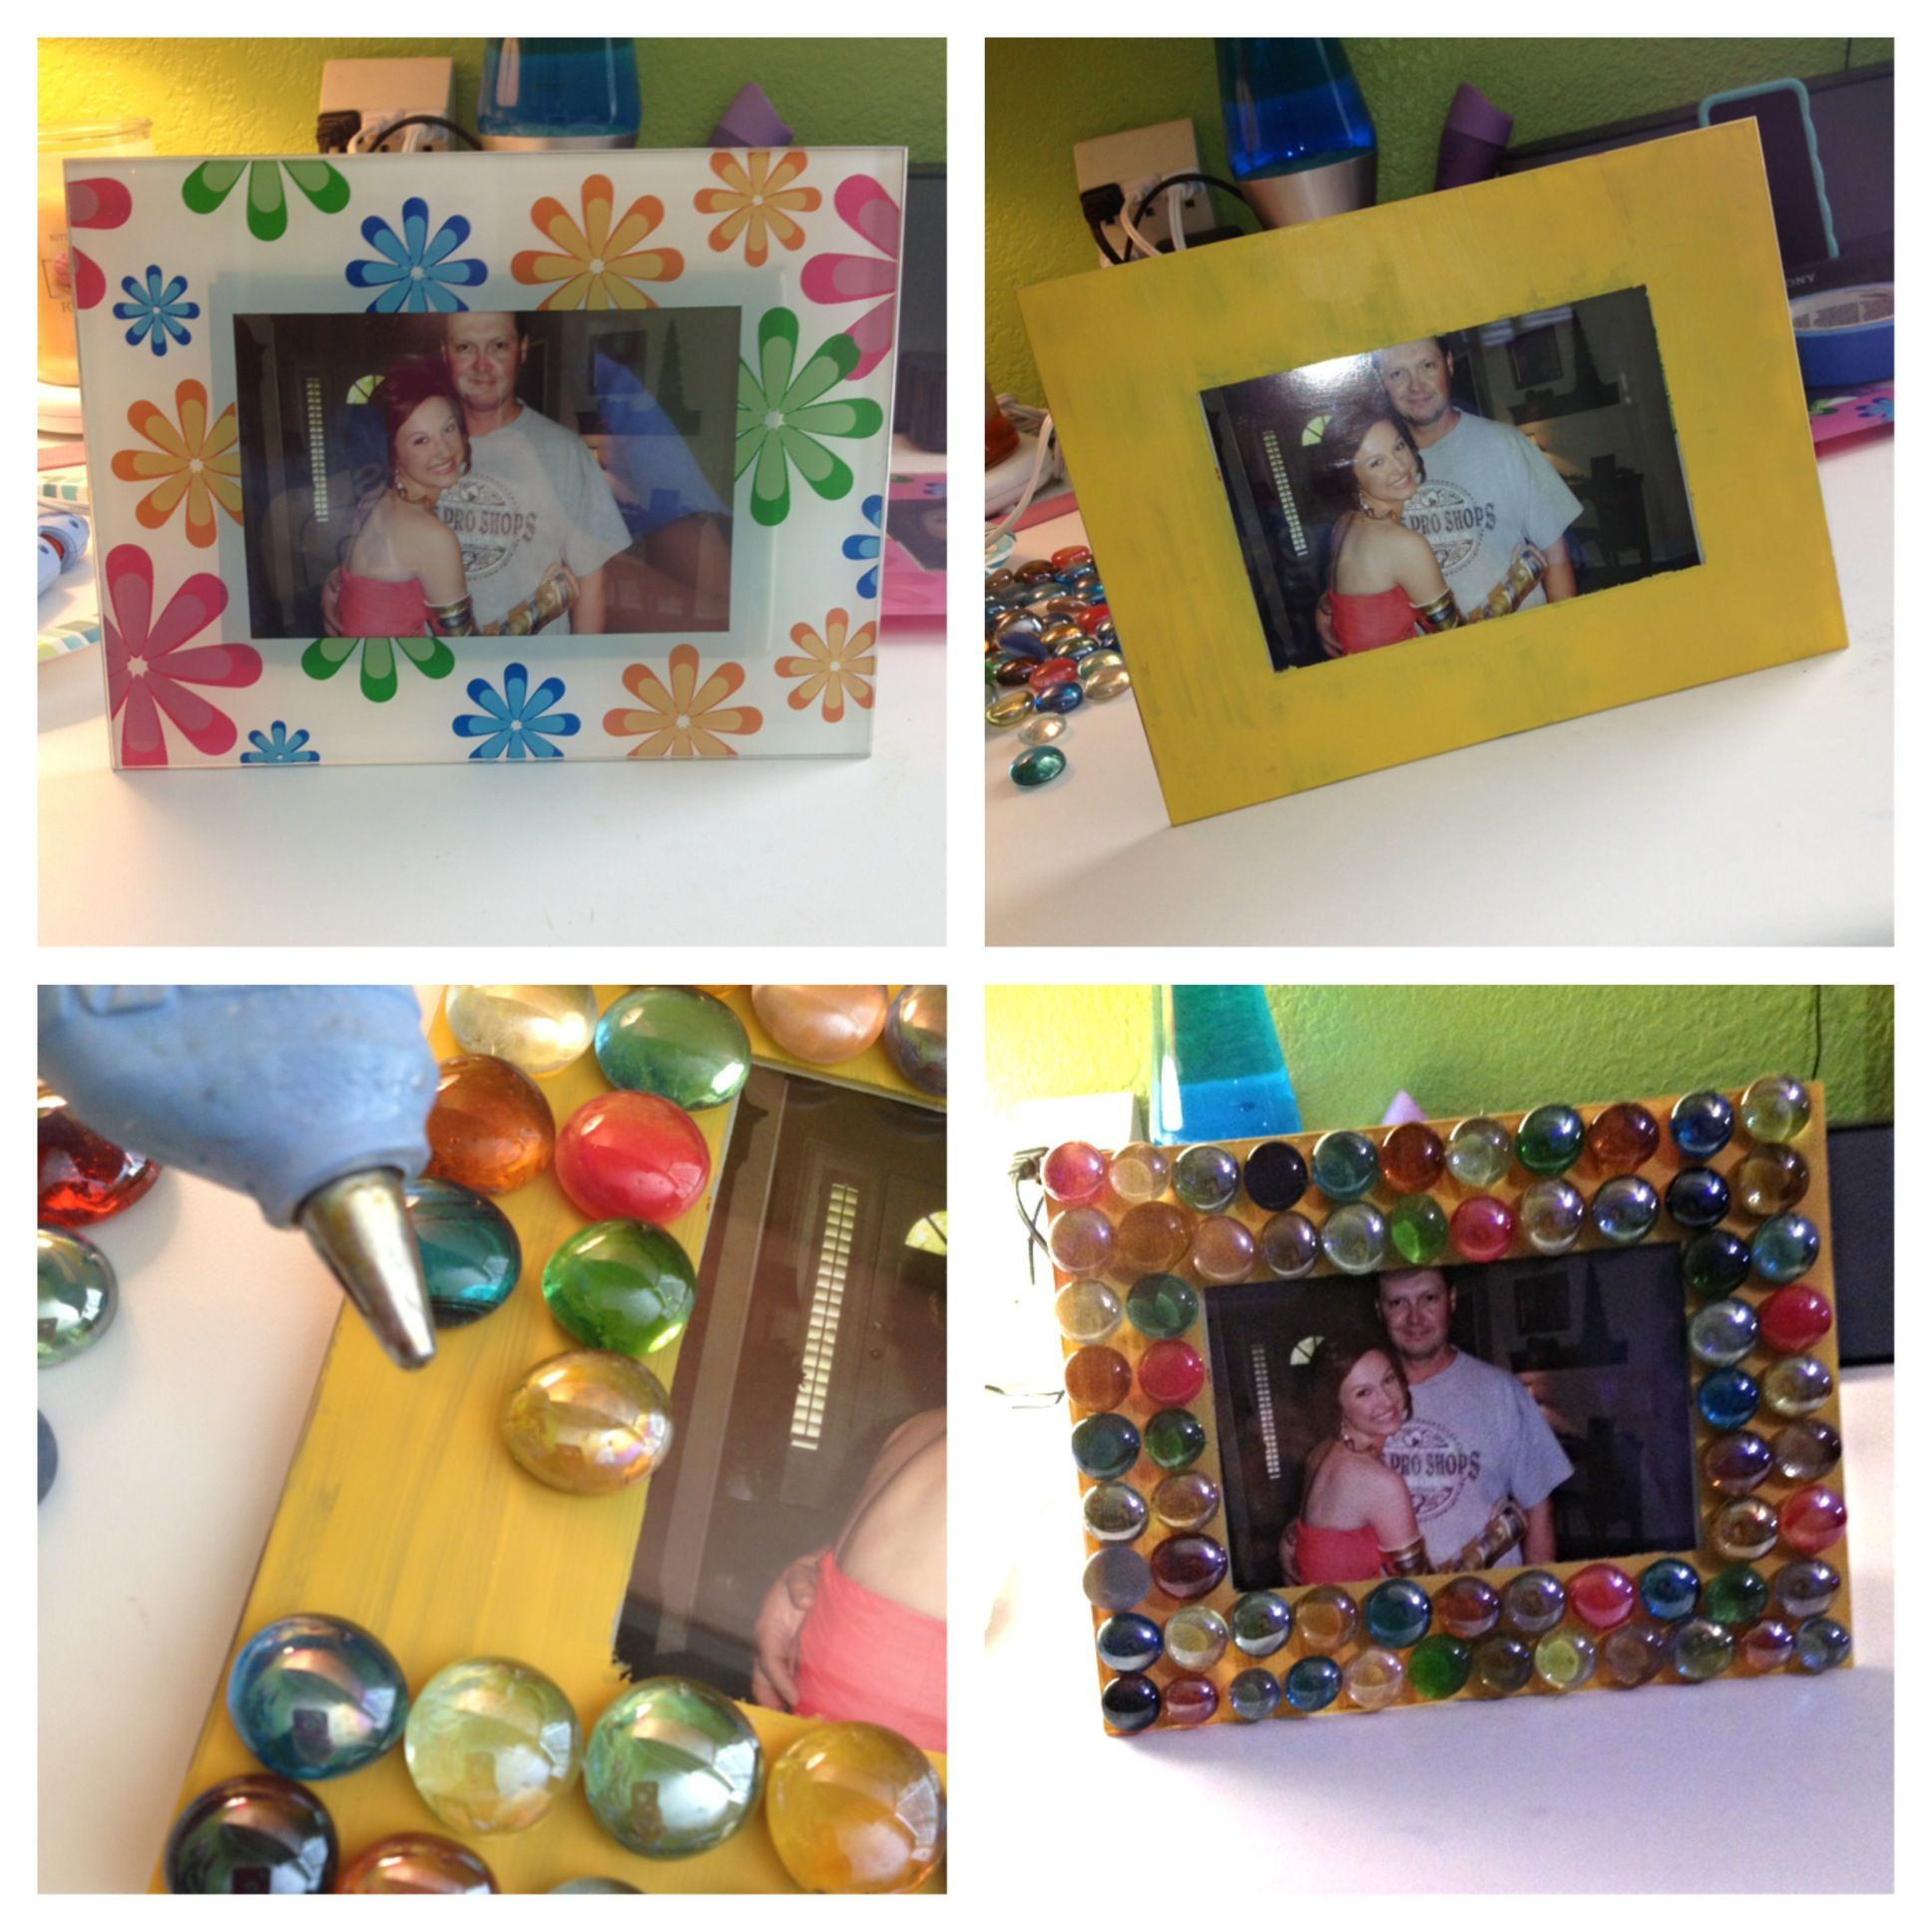 Make the cutest frame!!  What you'll need: mosaic gems from hobby lobby, acrylic paint, hot glue and a picture frame!  First color the picture frame any color you want. Then hot glue the mosaic tiles on the frame in any order or fashion you like. And then you have a completely new frame. Great for redecorating and spicing things up! And super easy DIY.